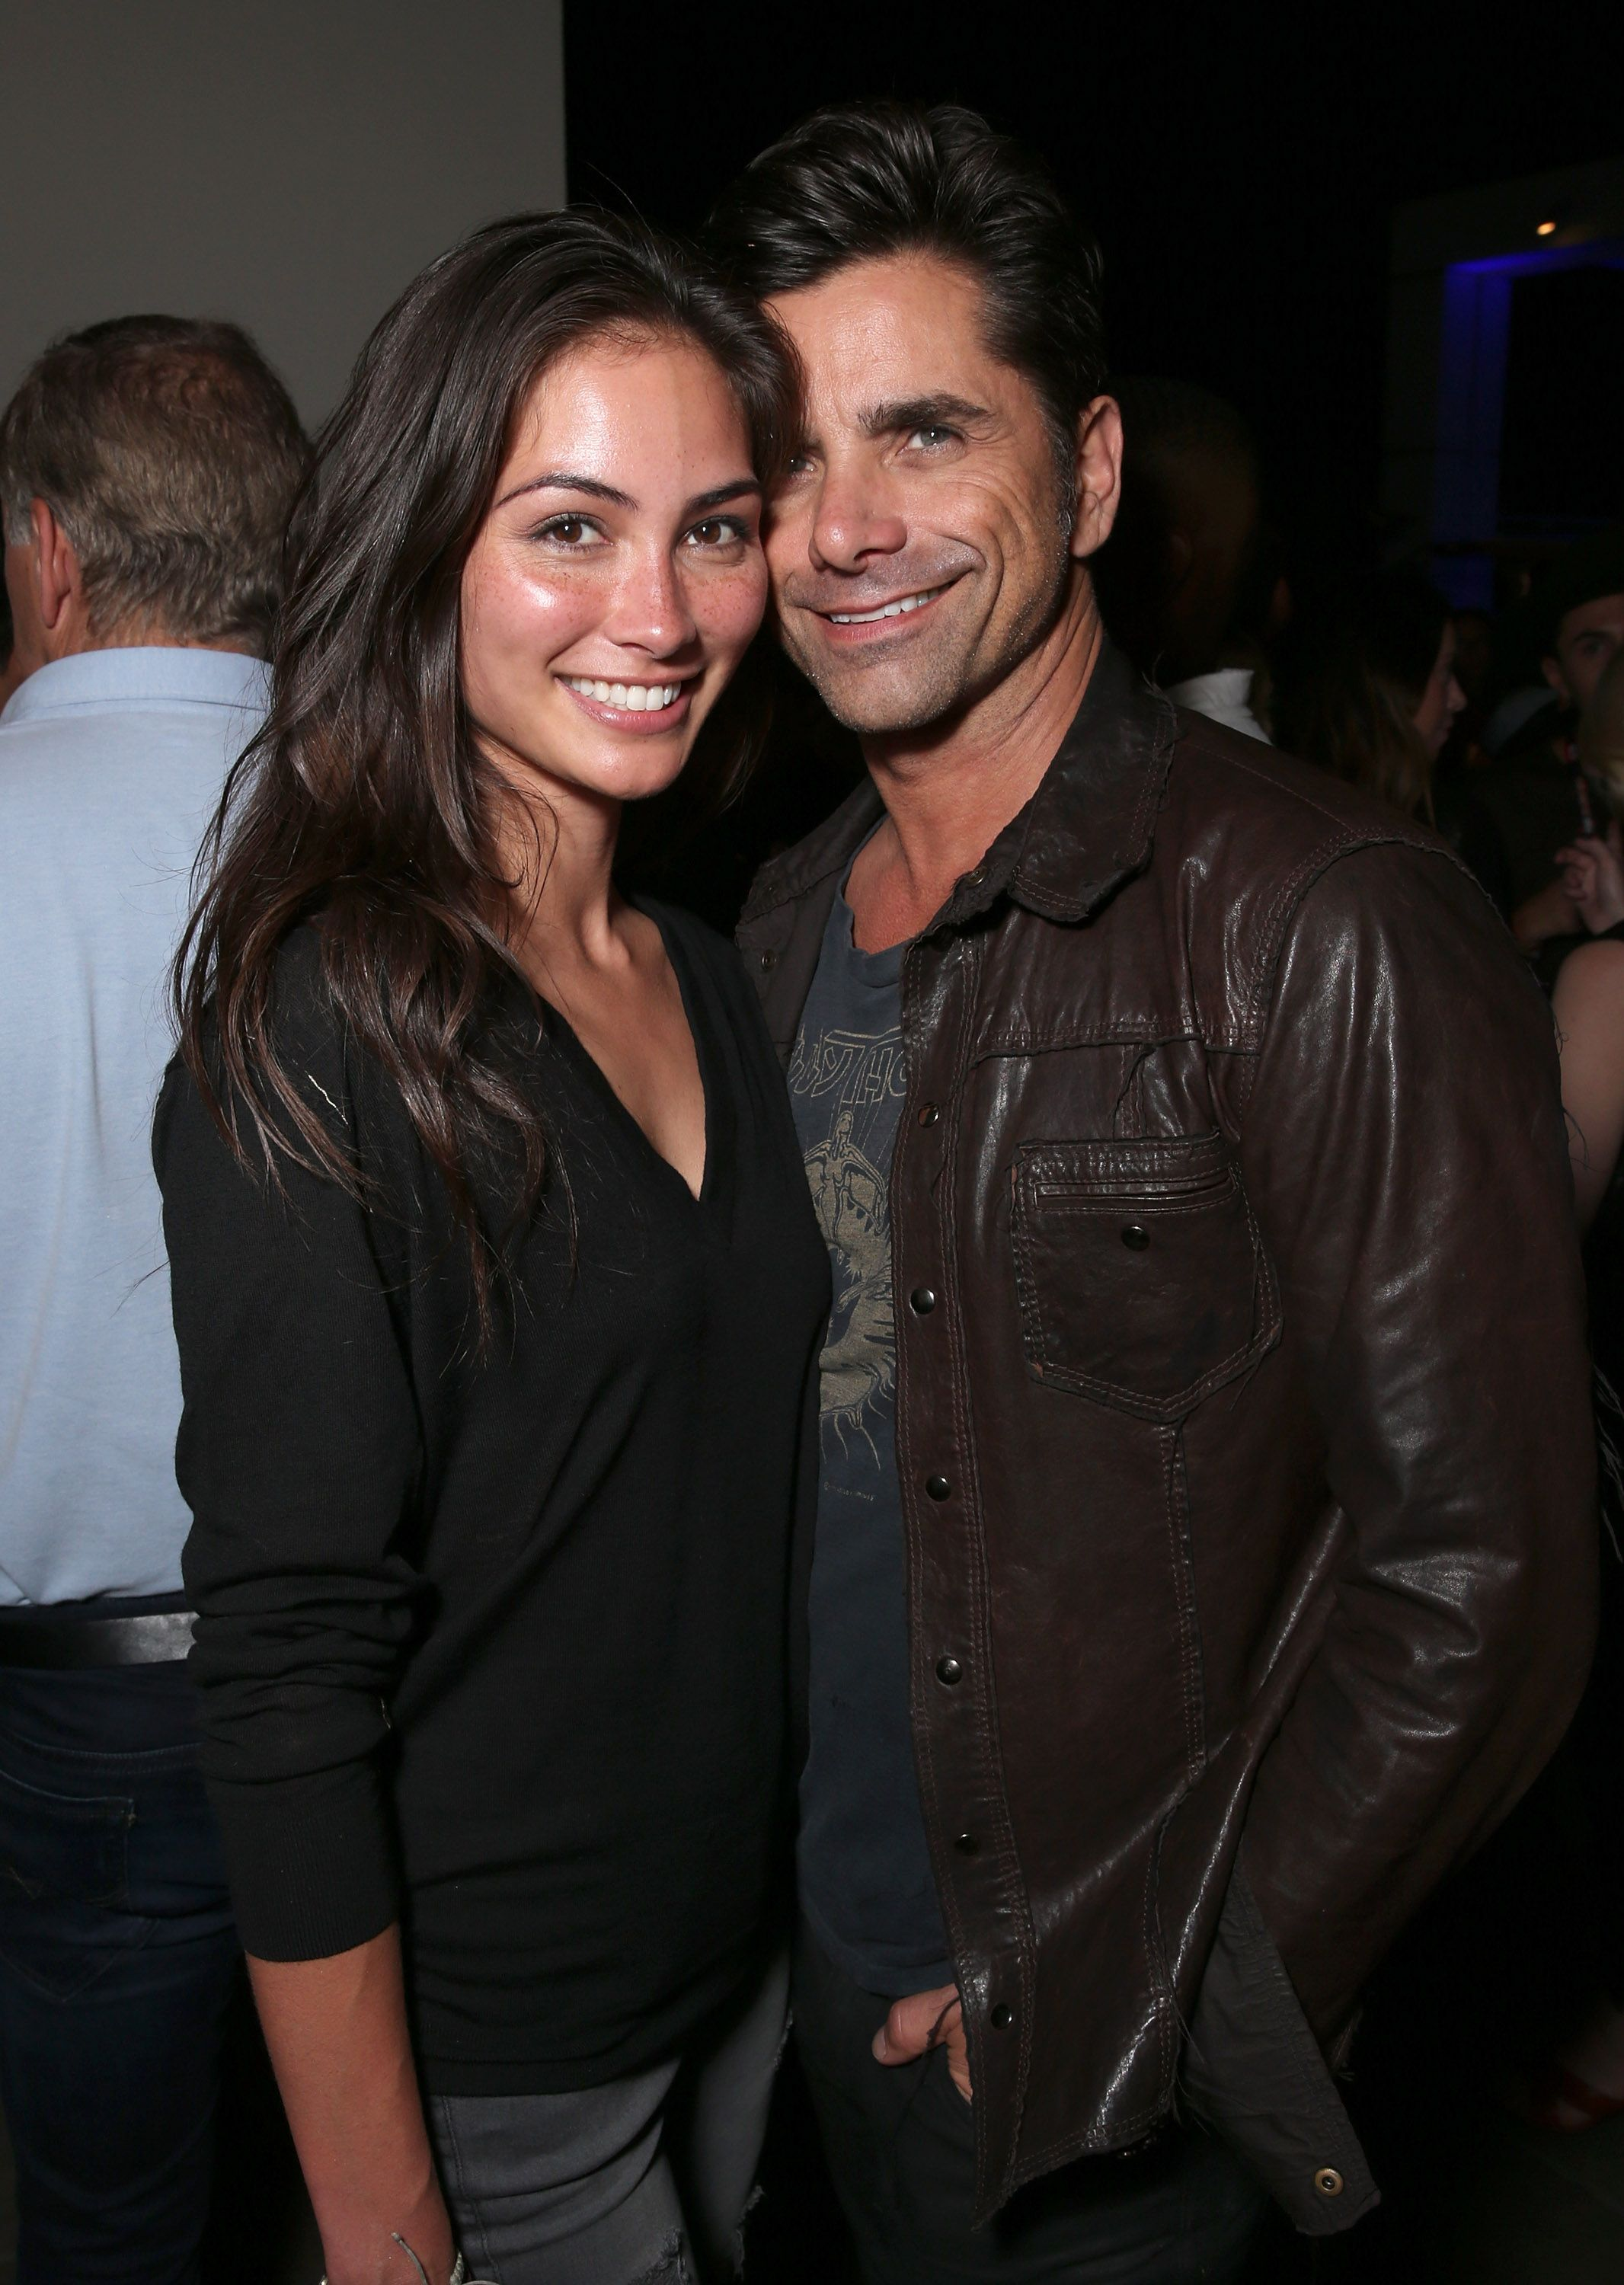 a7c3b725459 John Stamos Makes First Public Appearance With Girlfriend Caitlin ...